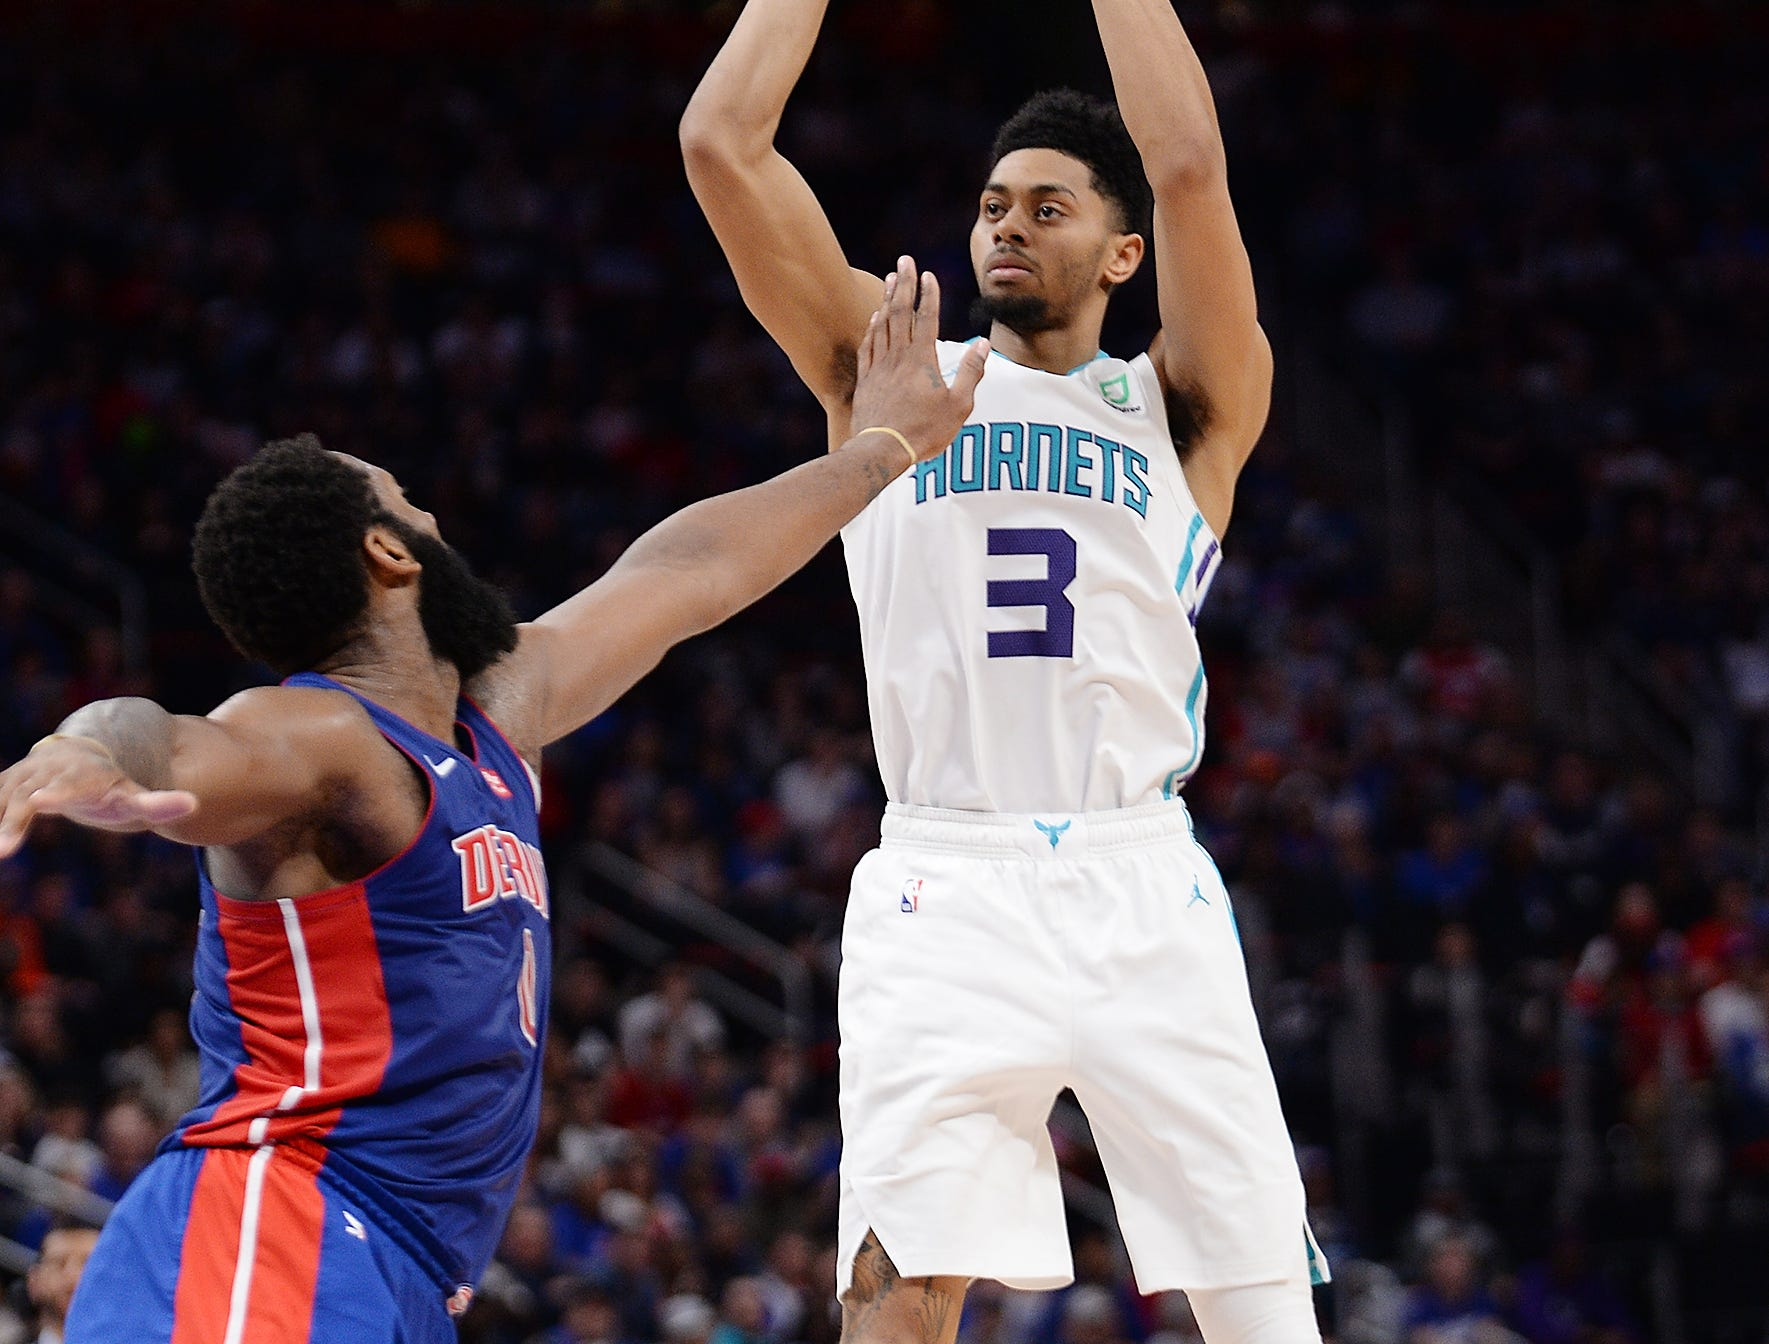 Hornets' Jeremy Lamb scores over Pistons' Andre Drummond in the fourth quarter.